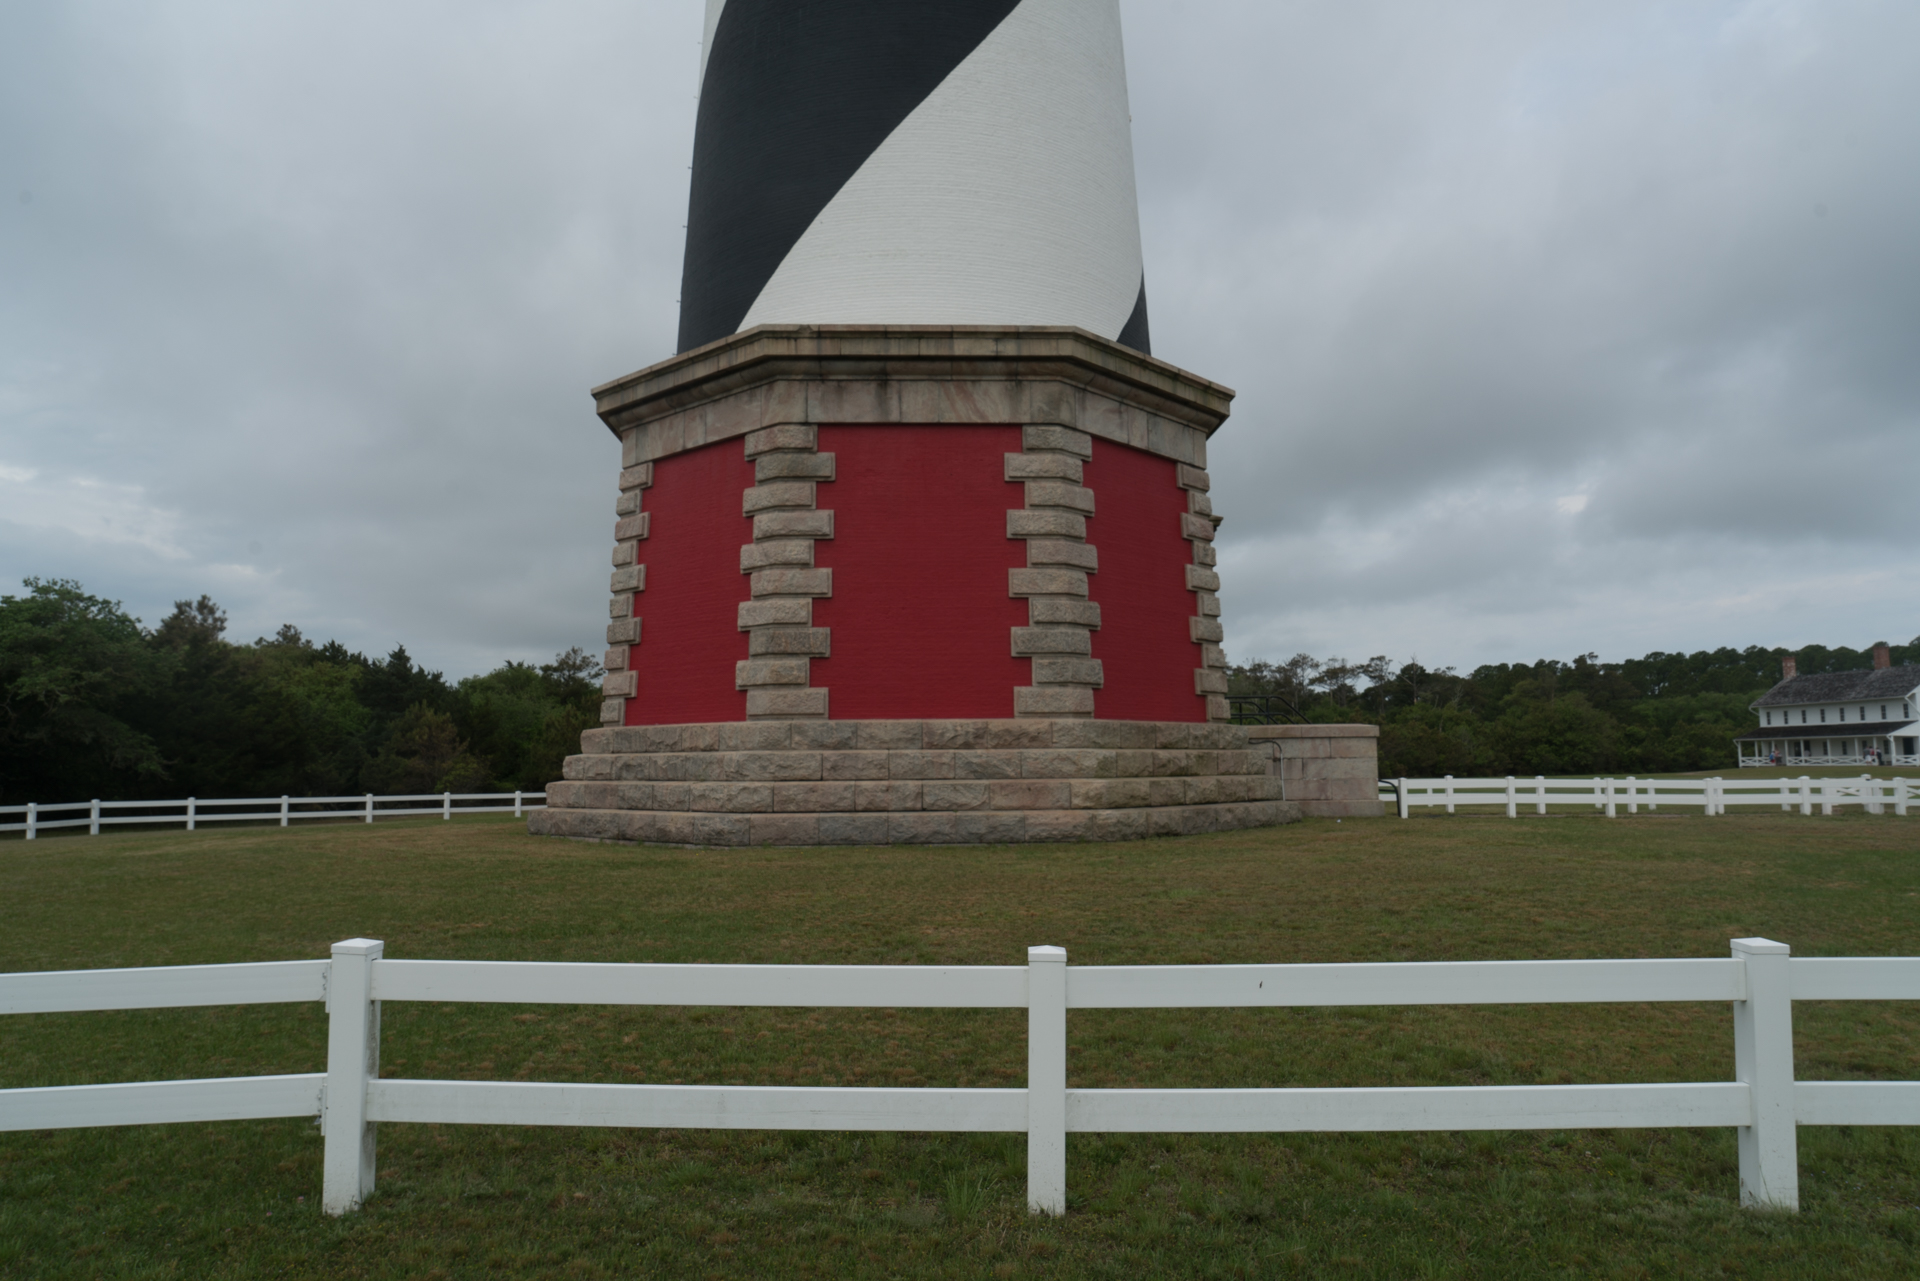 """Hatteras Lighthouse,was moved nearly half a mile inland to higher ground in 1999 after years of """"beach nourishment,"""" a practice that replaced lost beach sand. The dynamics of a barrier island keep it in constant motion. The neighborhood being swamped by sand dunes is just a few hundred feet from the original site of the lighthouse."""